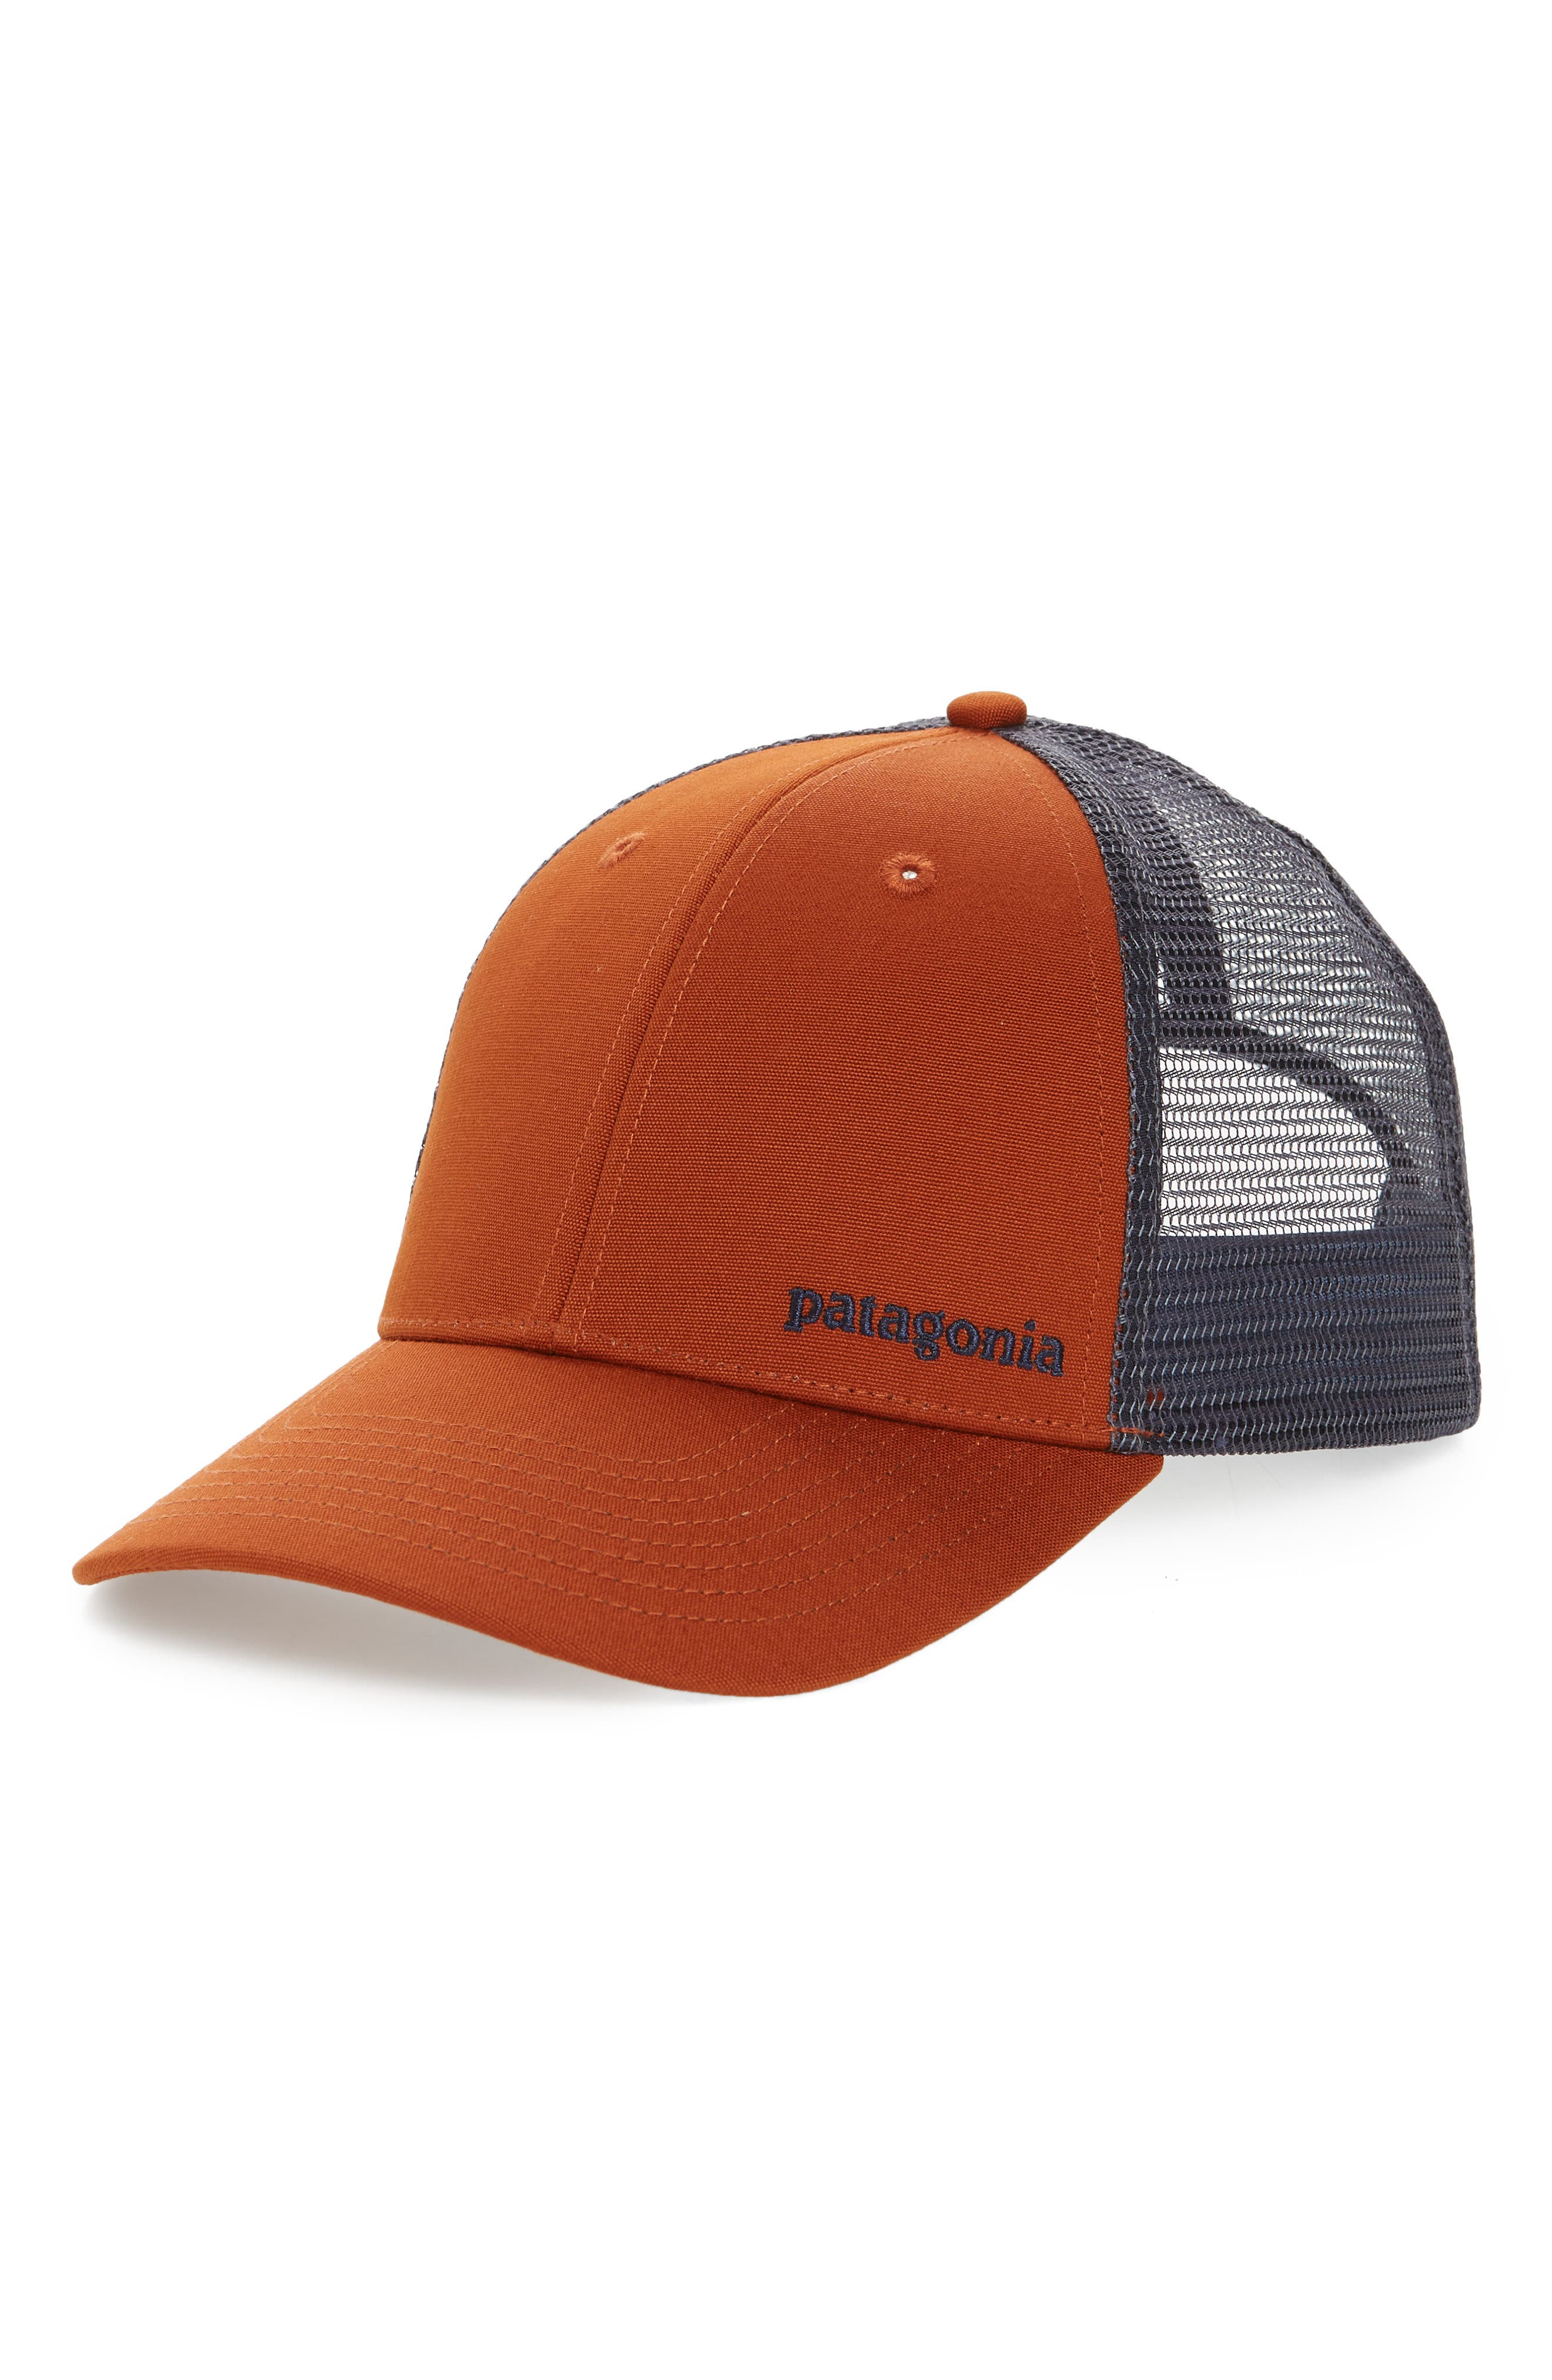 Patagonia Text Logo Trucker Hat